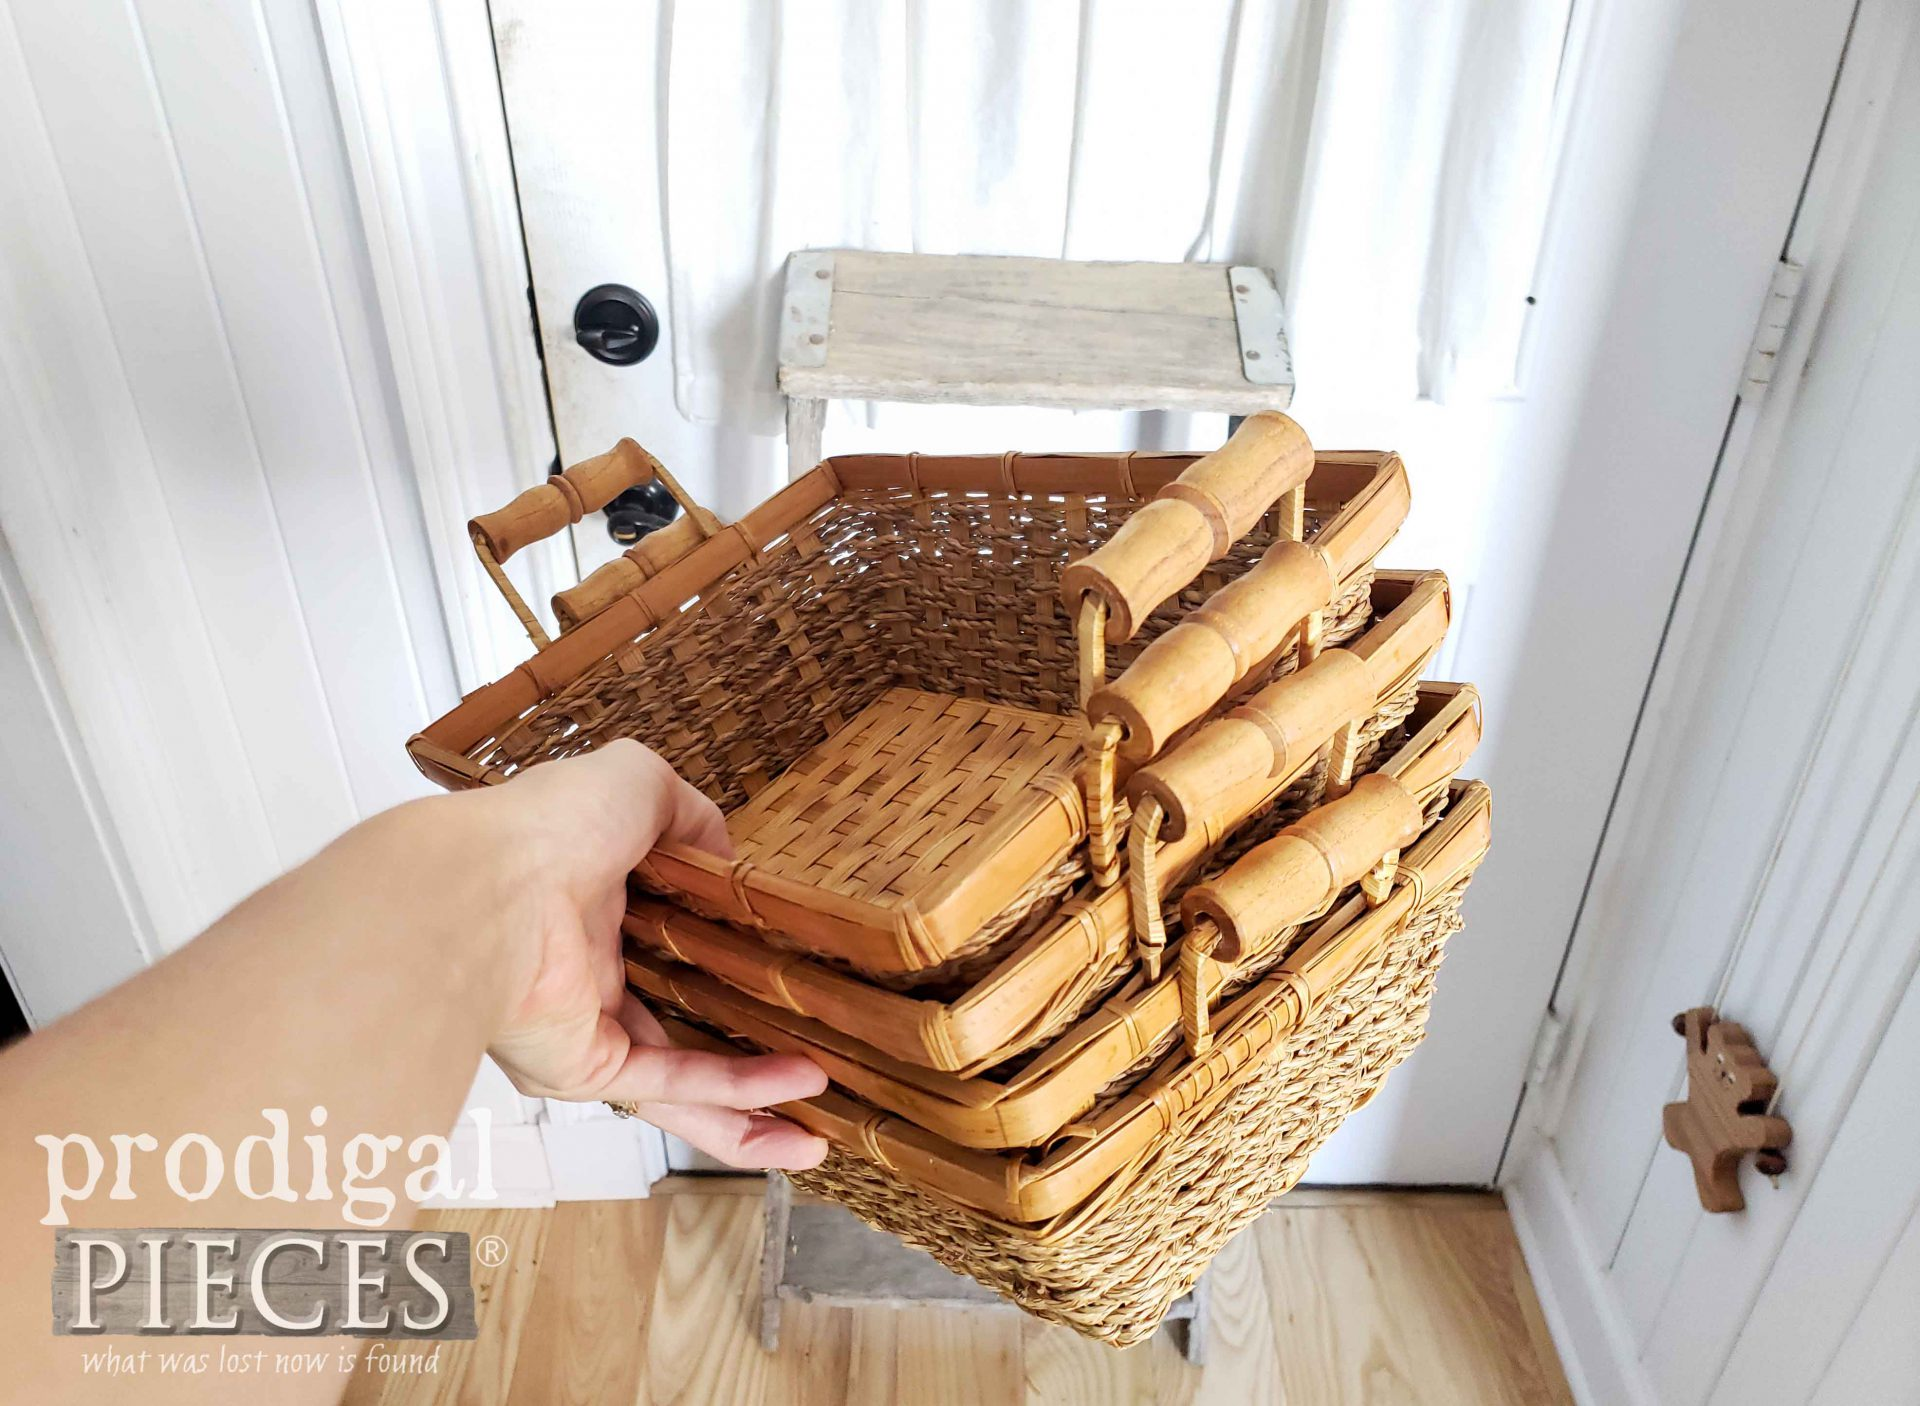 Set of Thrifted Baskets for Farmhouse Decor by Larissa of Prodigal Pieces | prodigalpieces.com #prodigalpieces